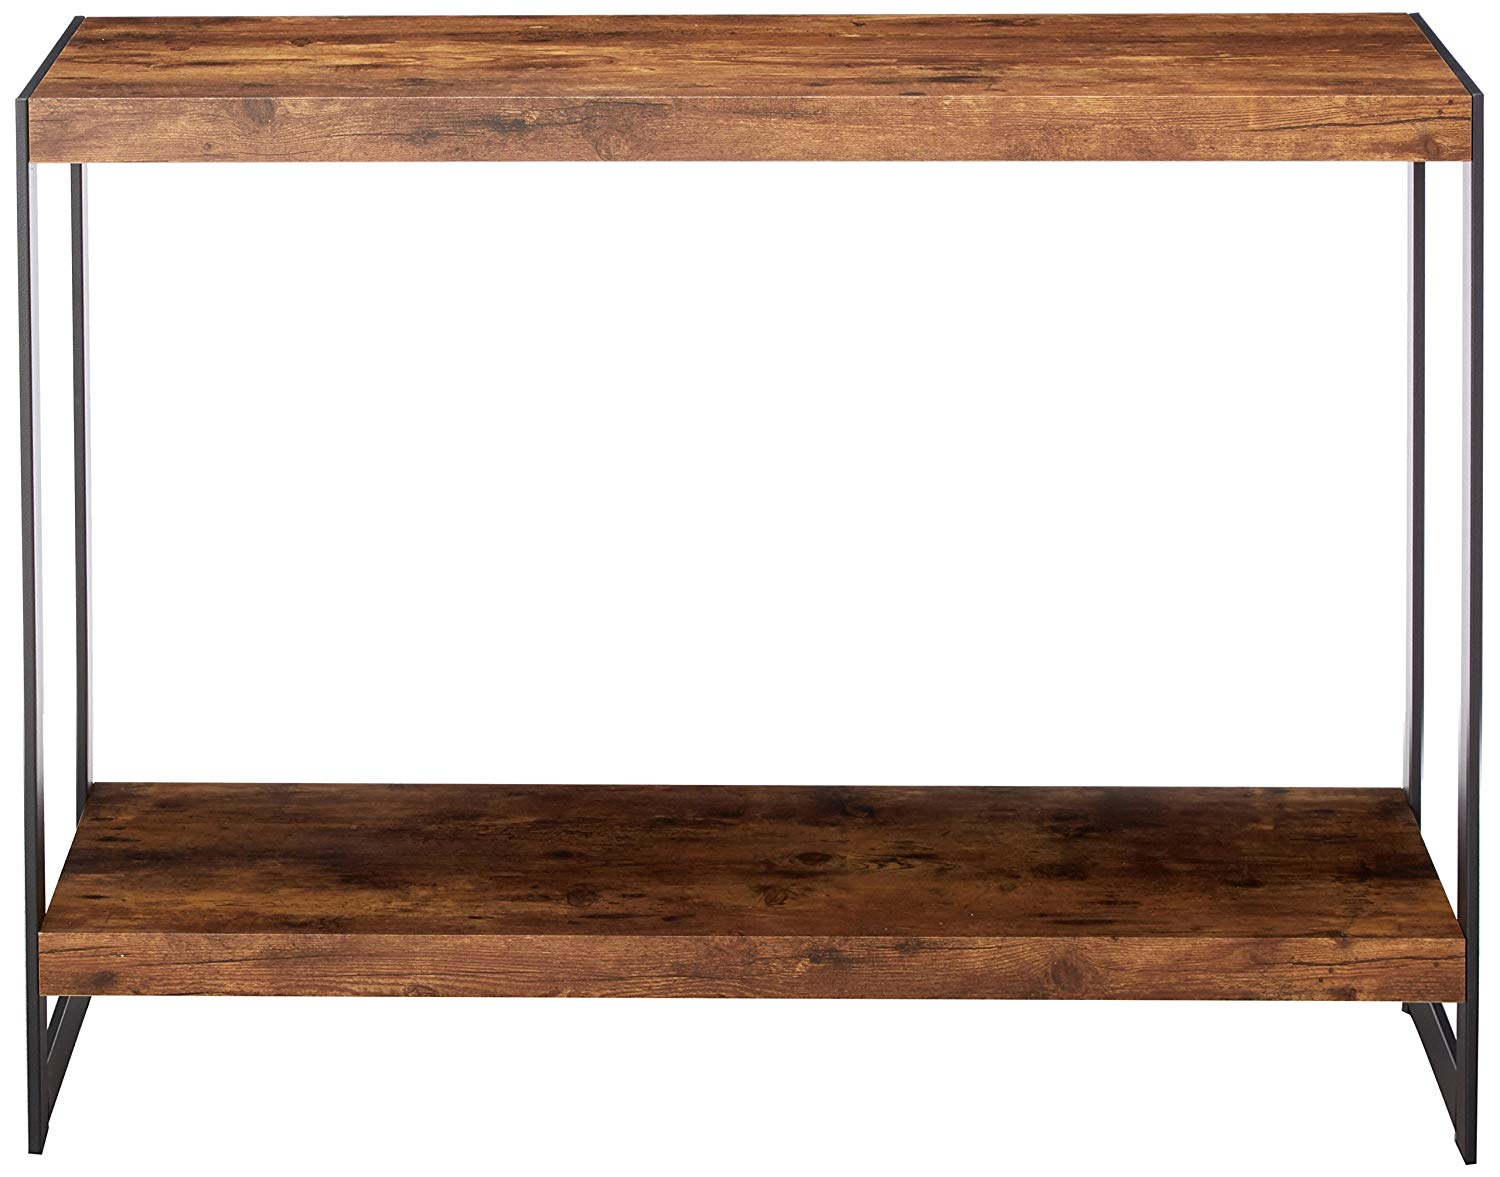 Coaster 704029 Rustic Wood Metal Sofa Table